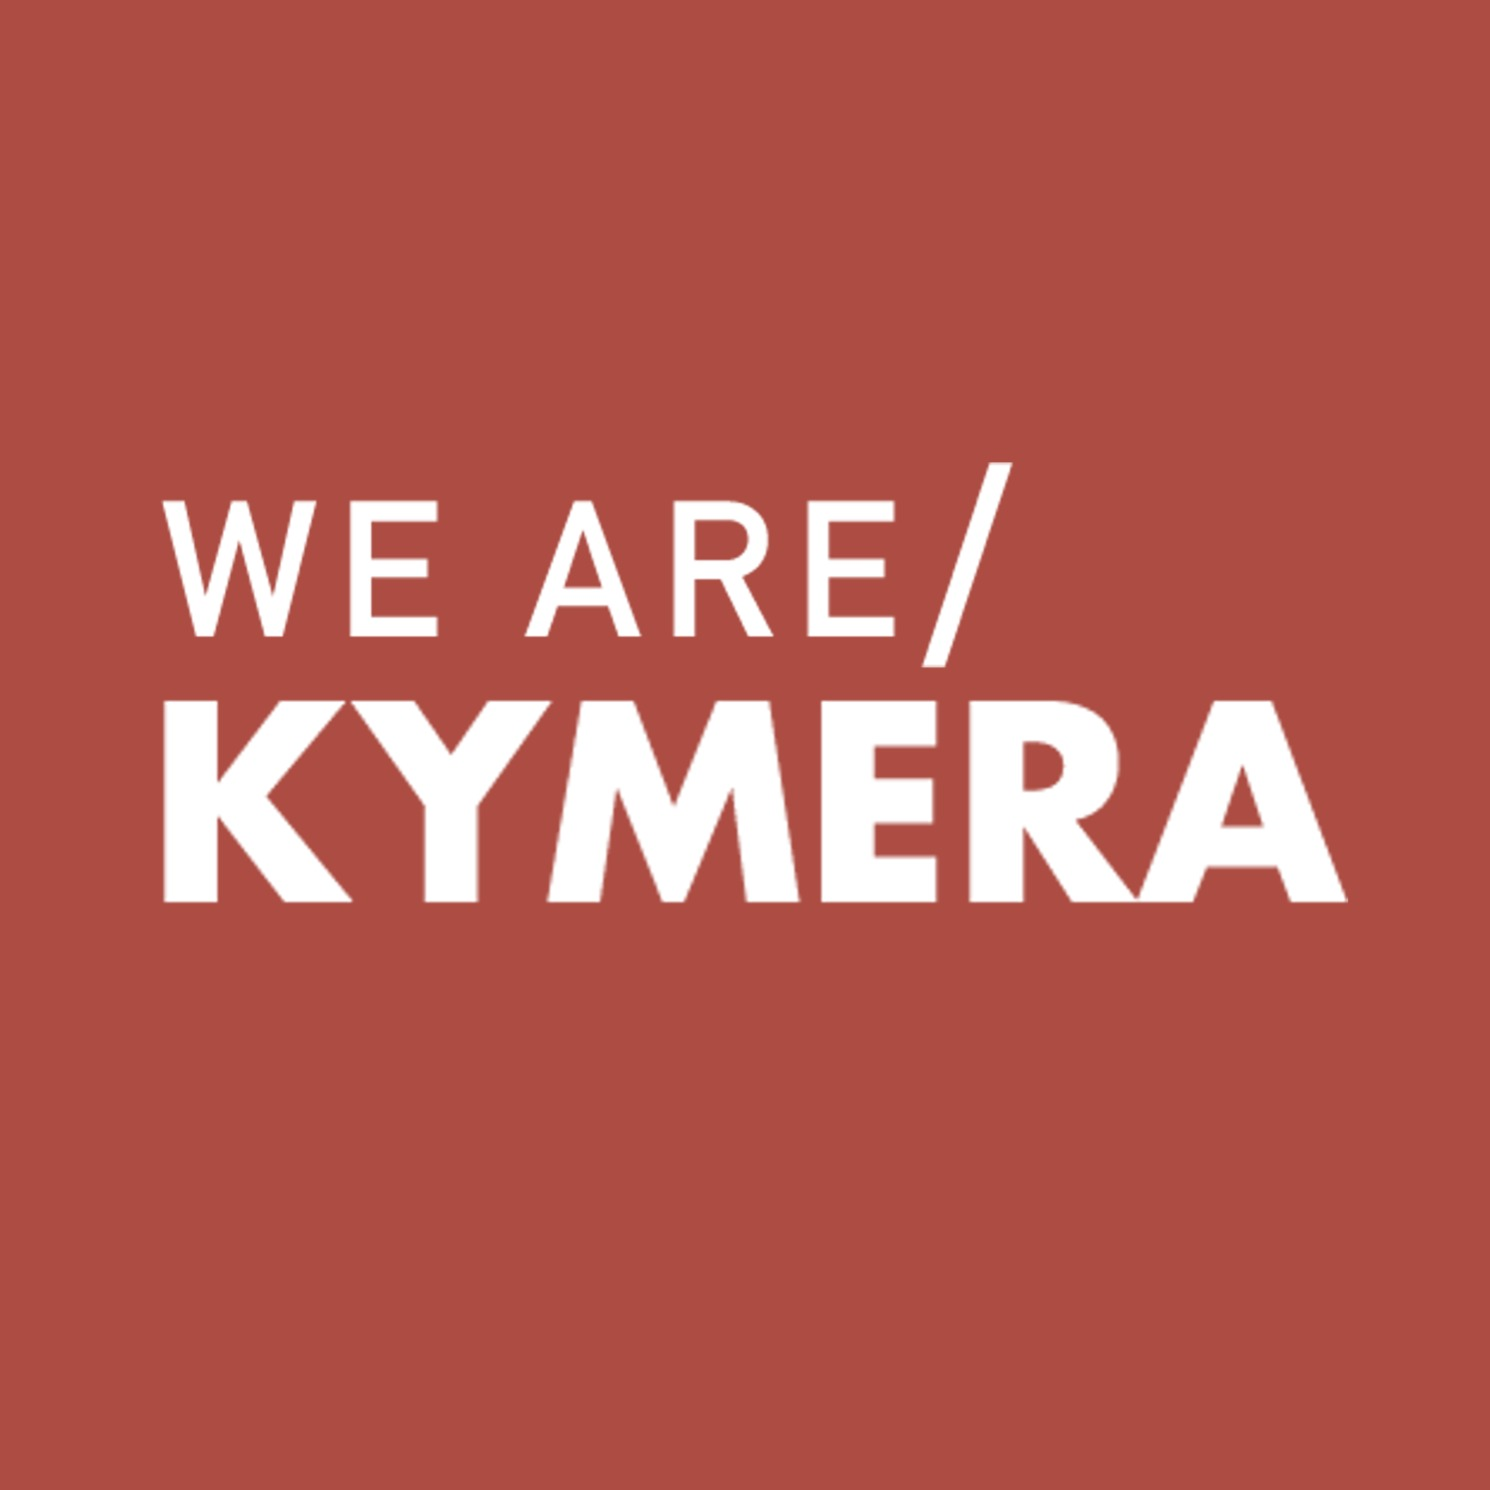 We Are Kymera